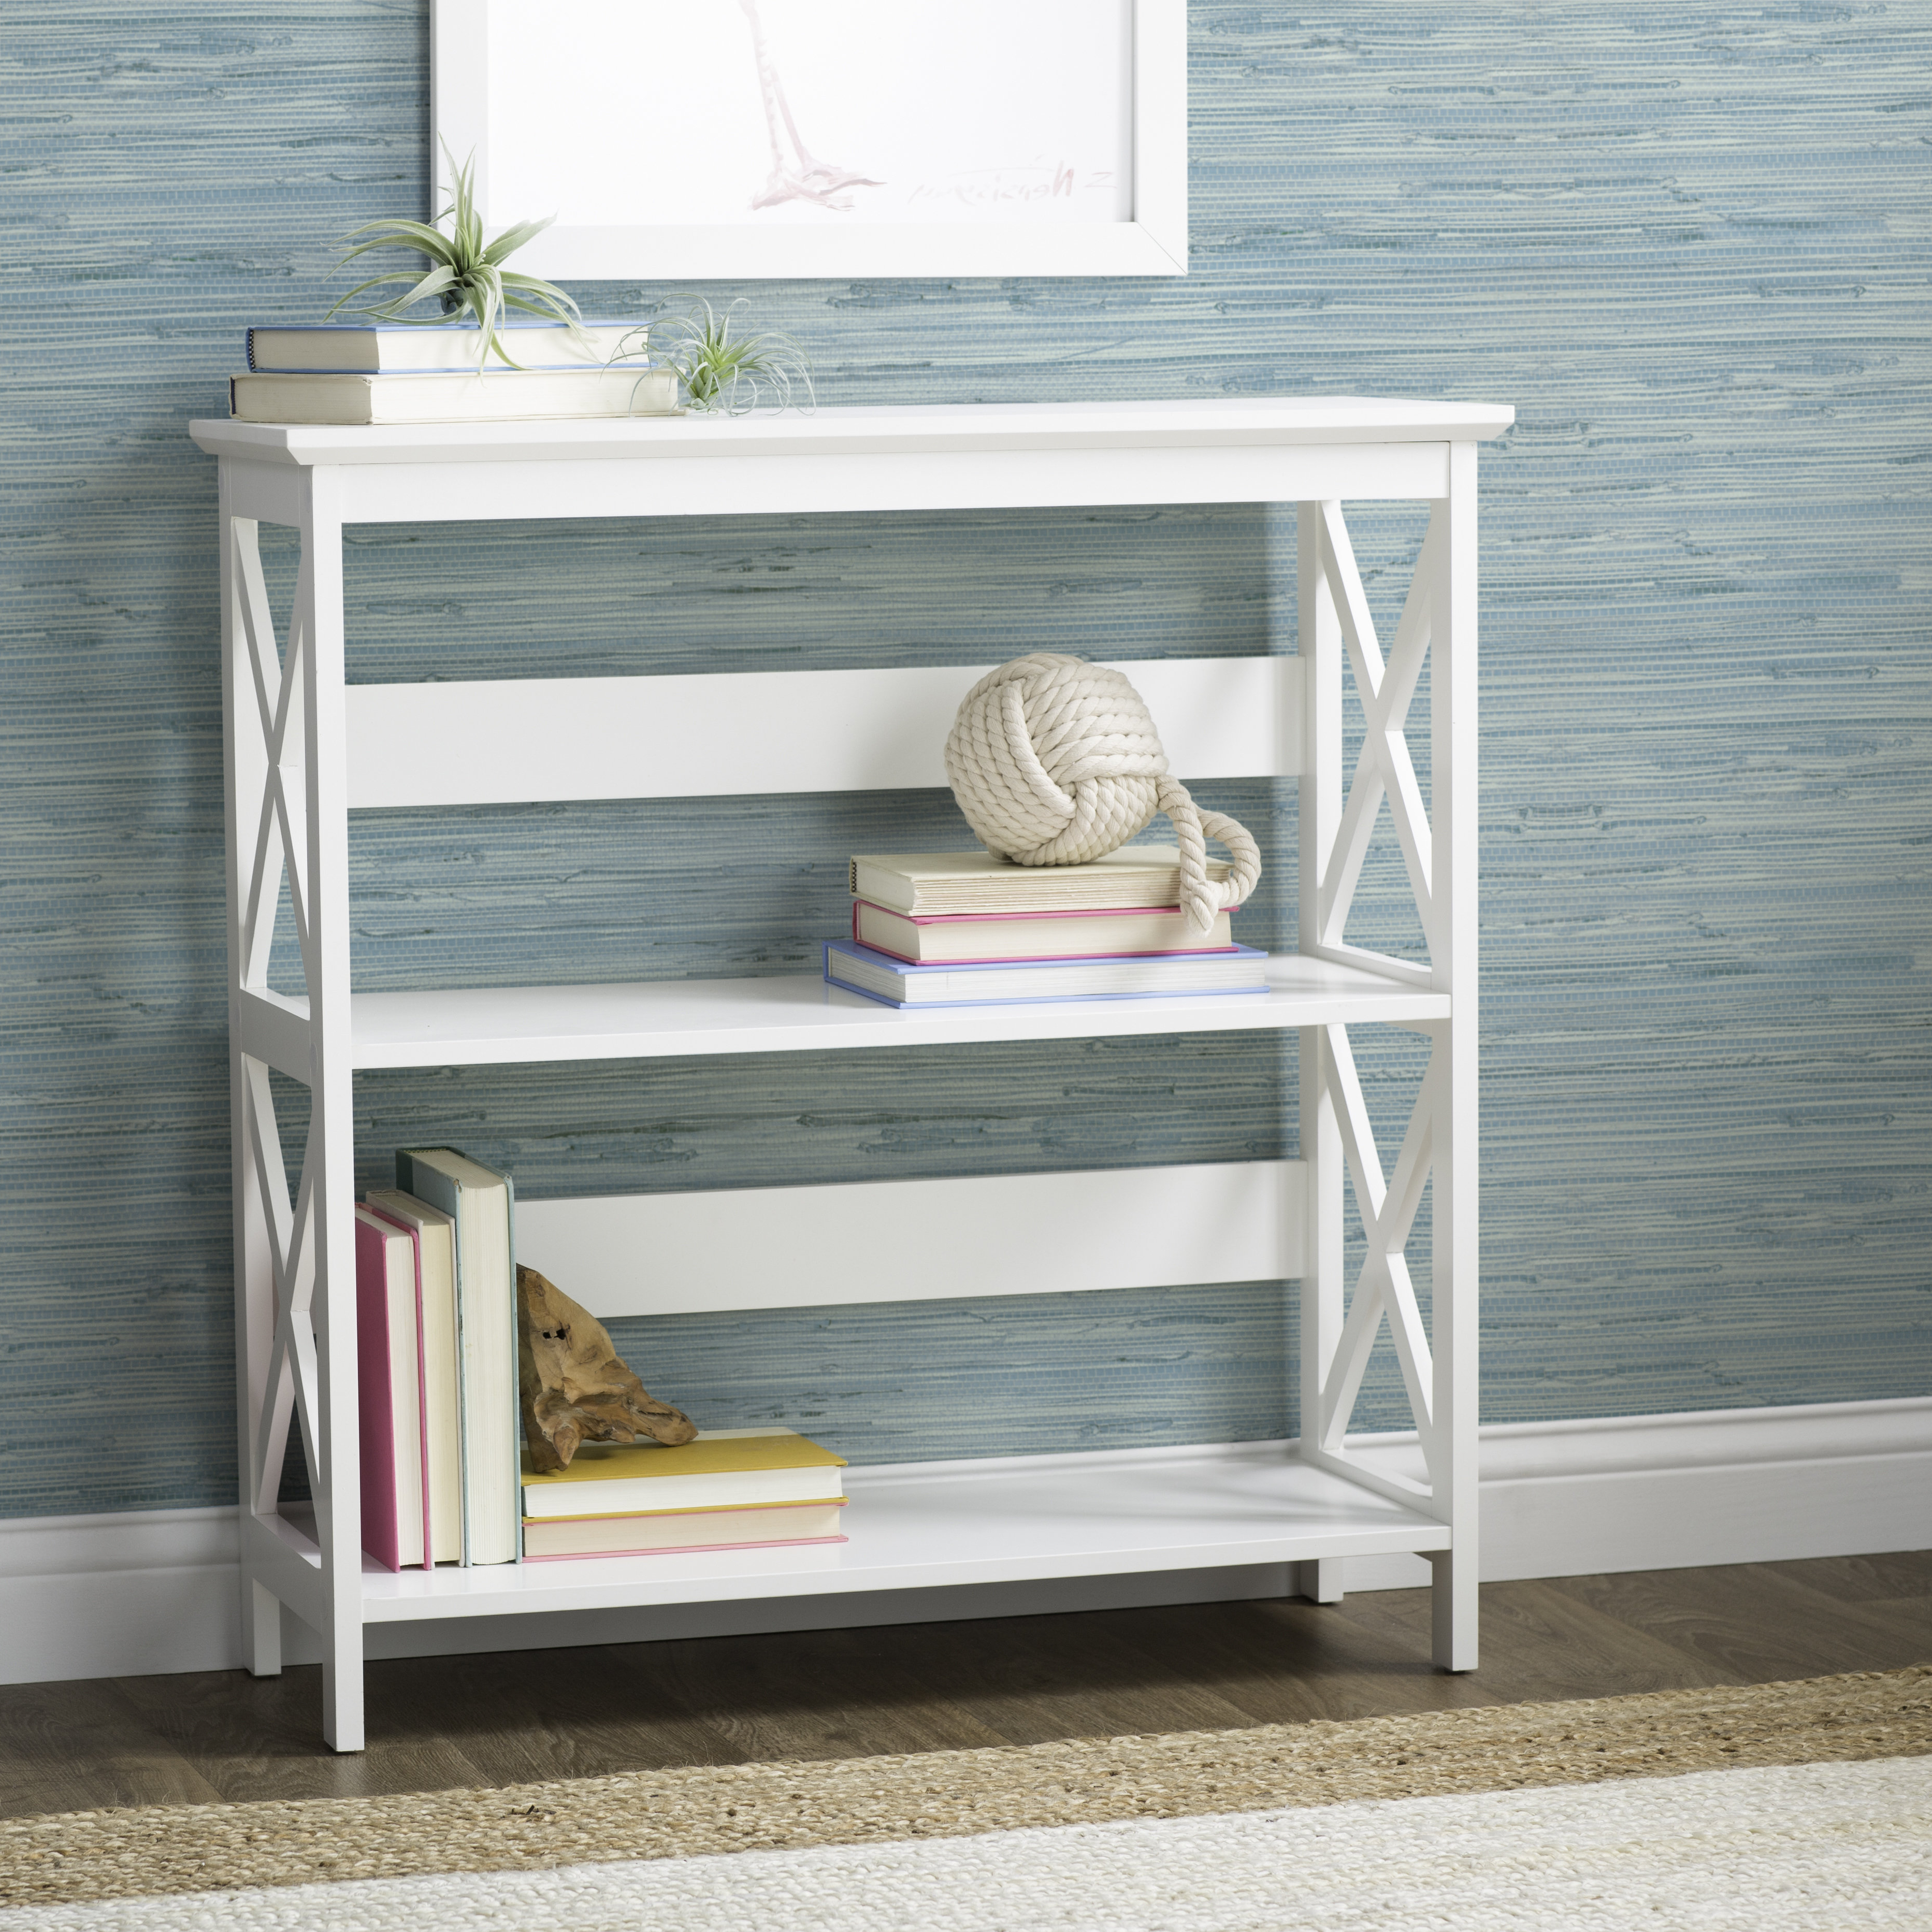 2019 Annabesook Etagere Bookcases For Stoneford Etagere Bookcase (View 16 of 20)